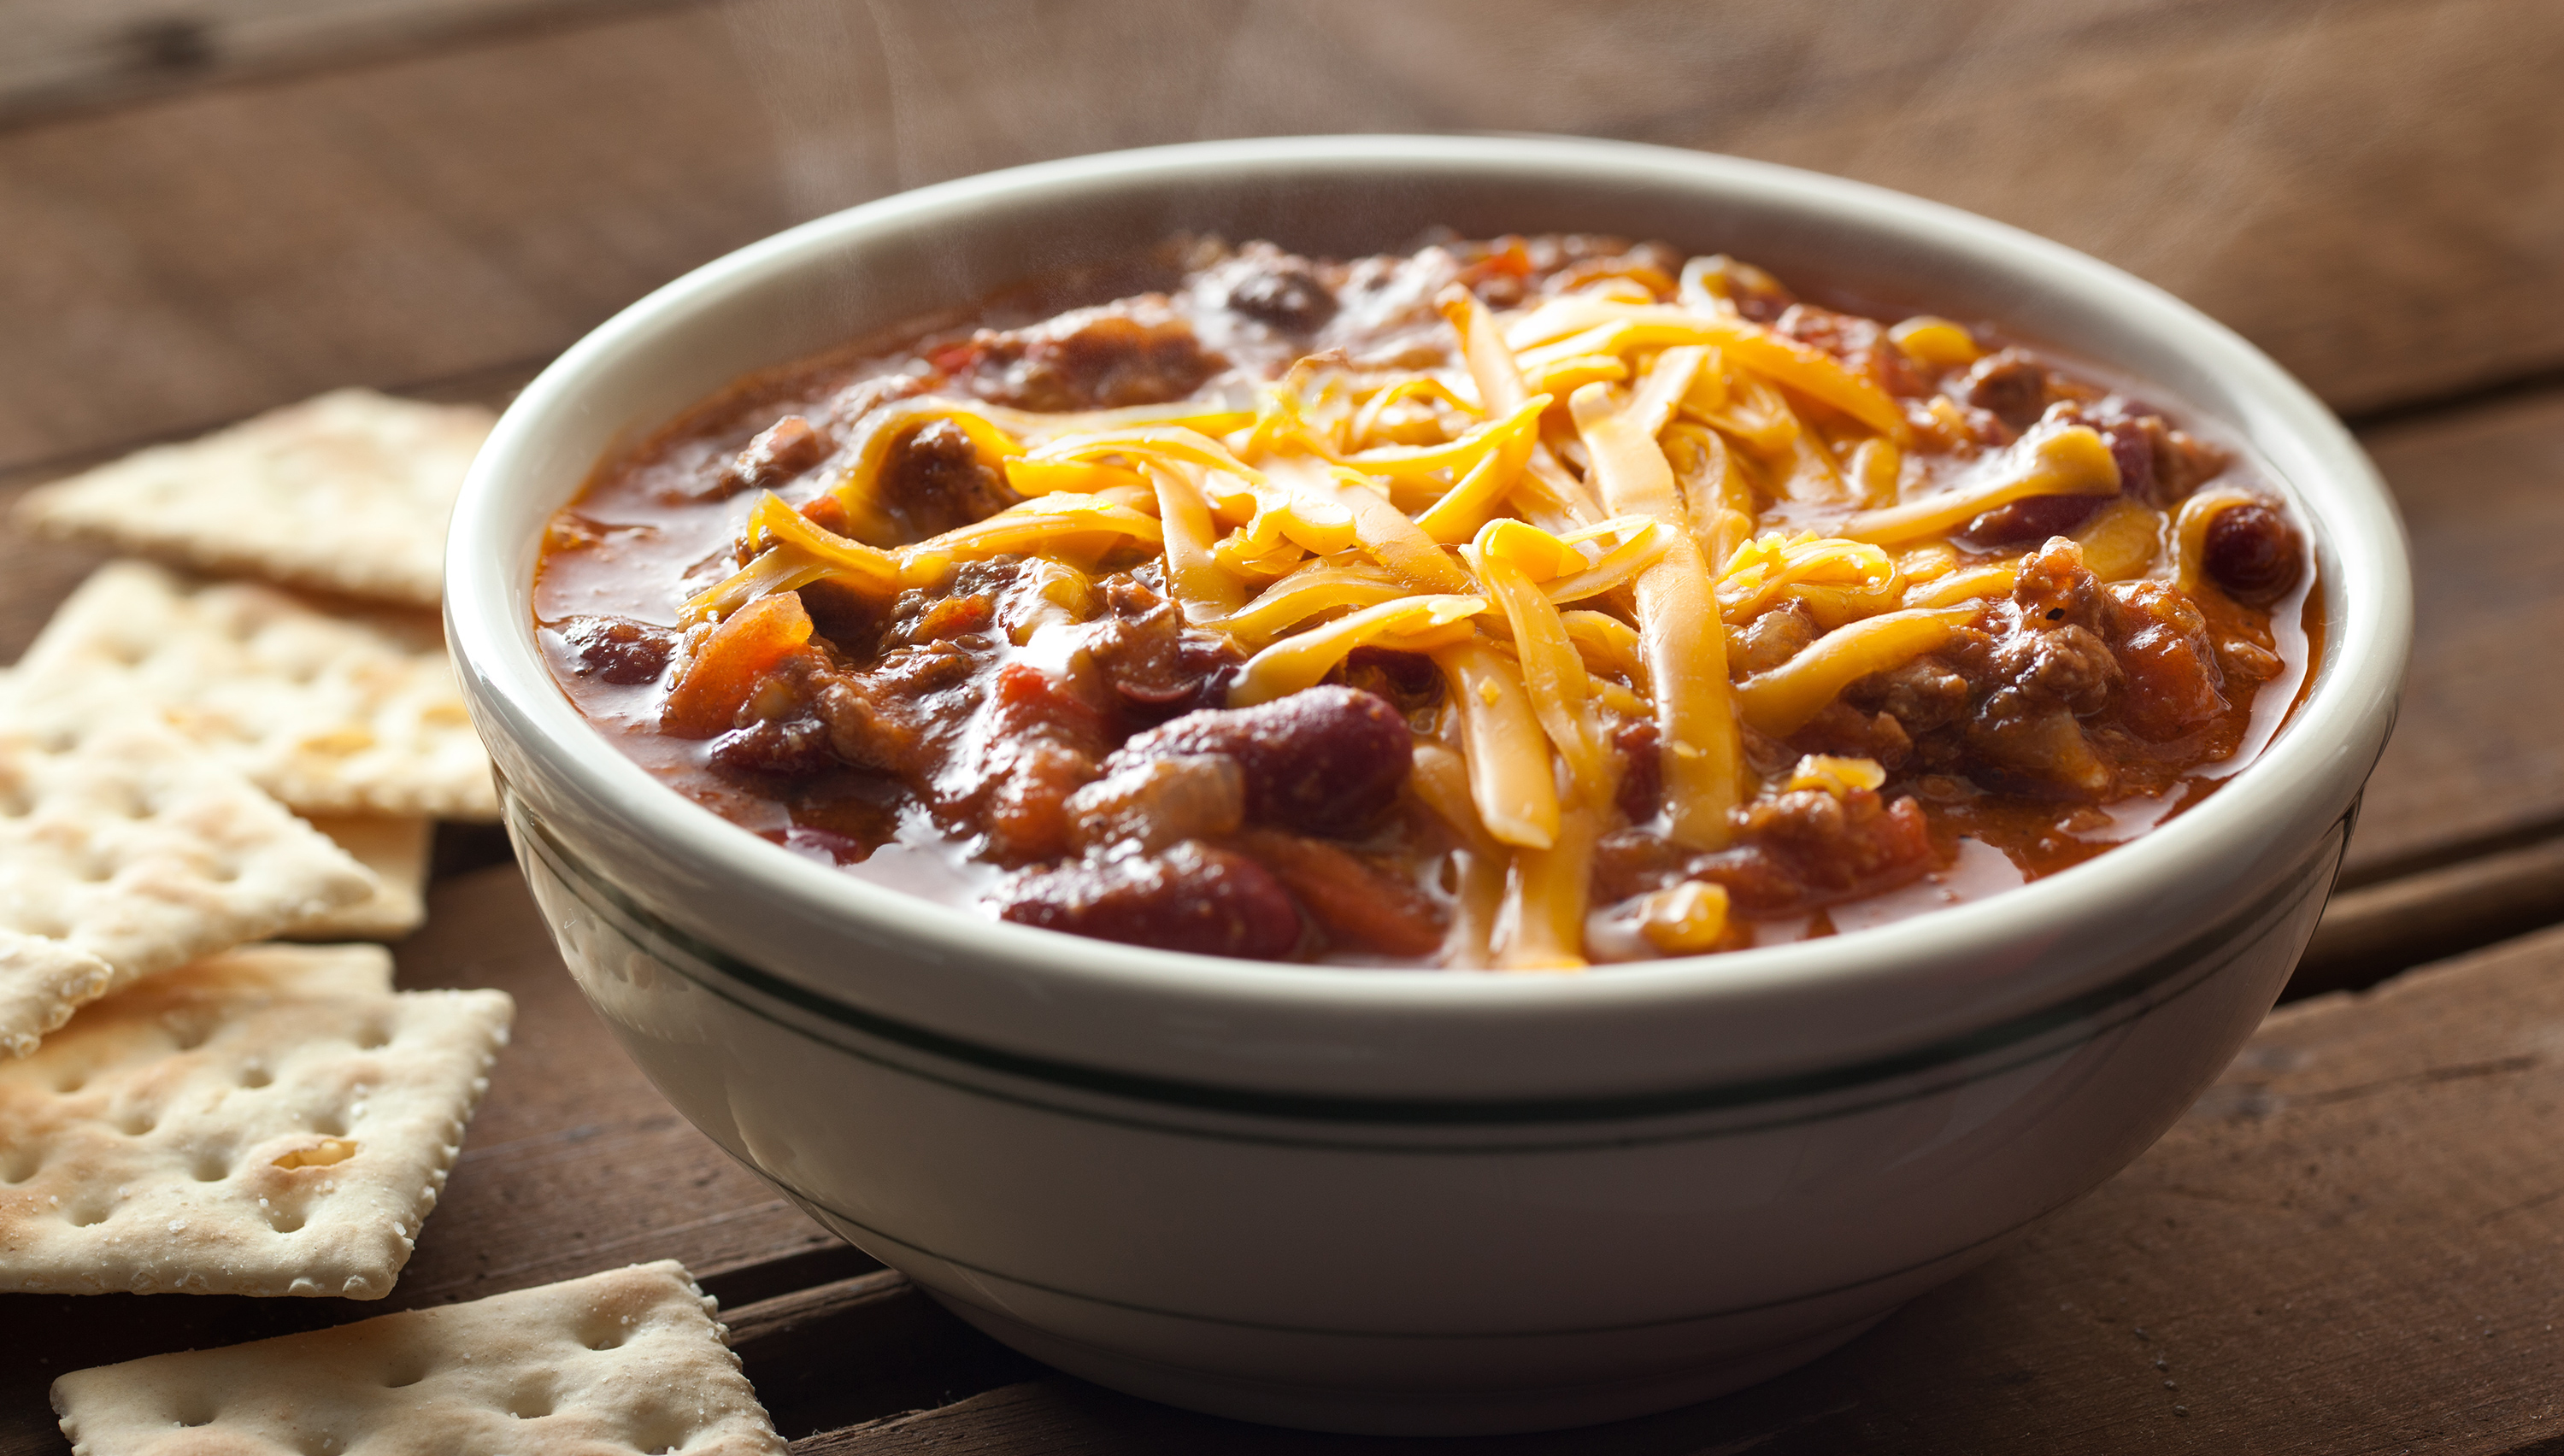 30669-spicy-slow-cooker-beef-chili-3000x2000.jpg